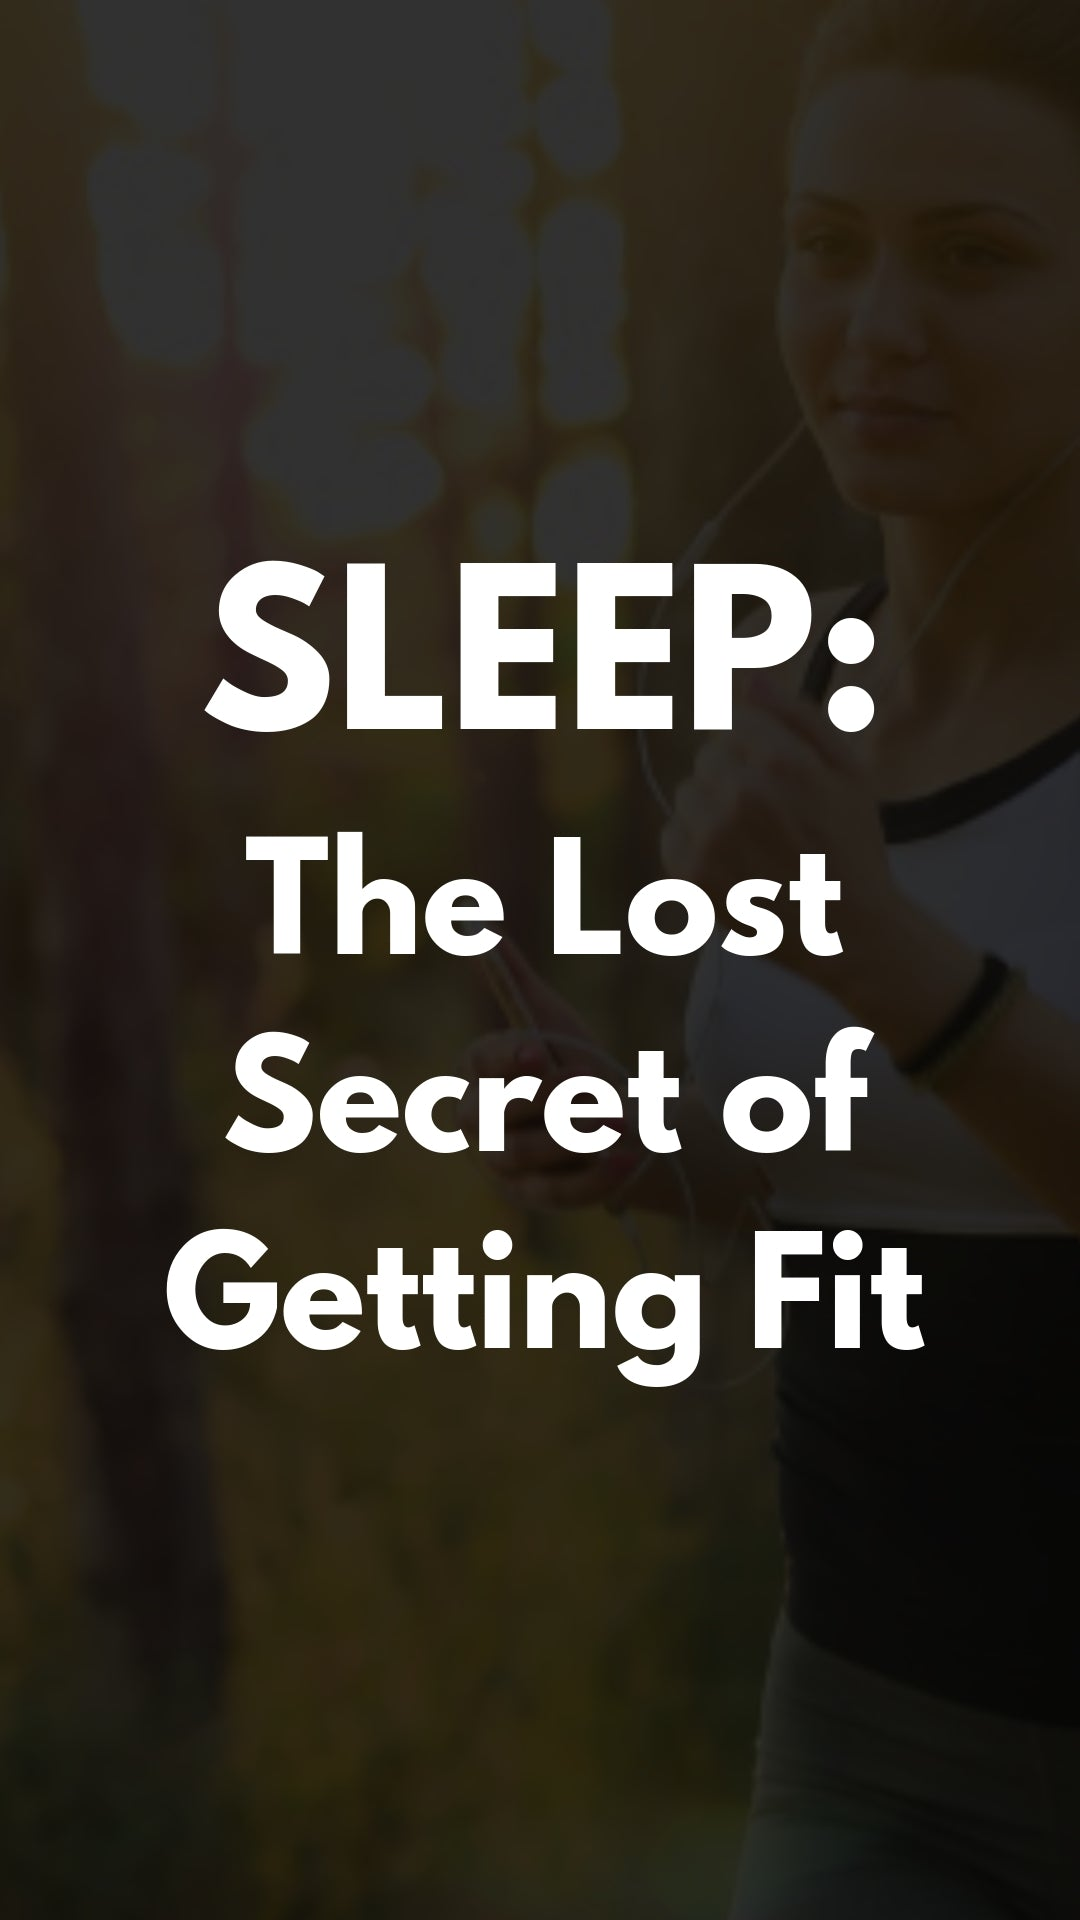 The Lost Secret of Getting Fit